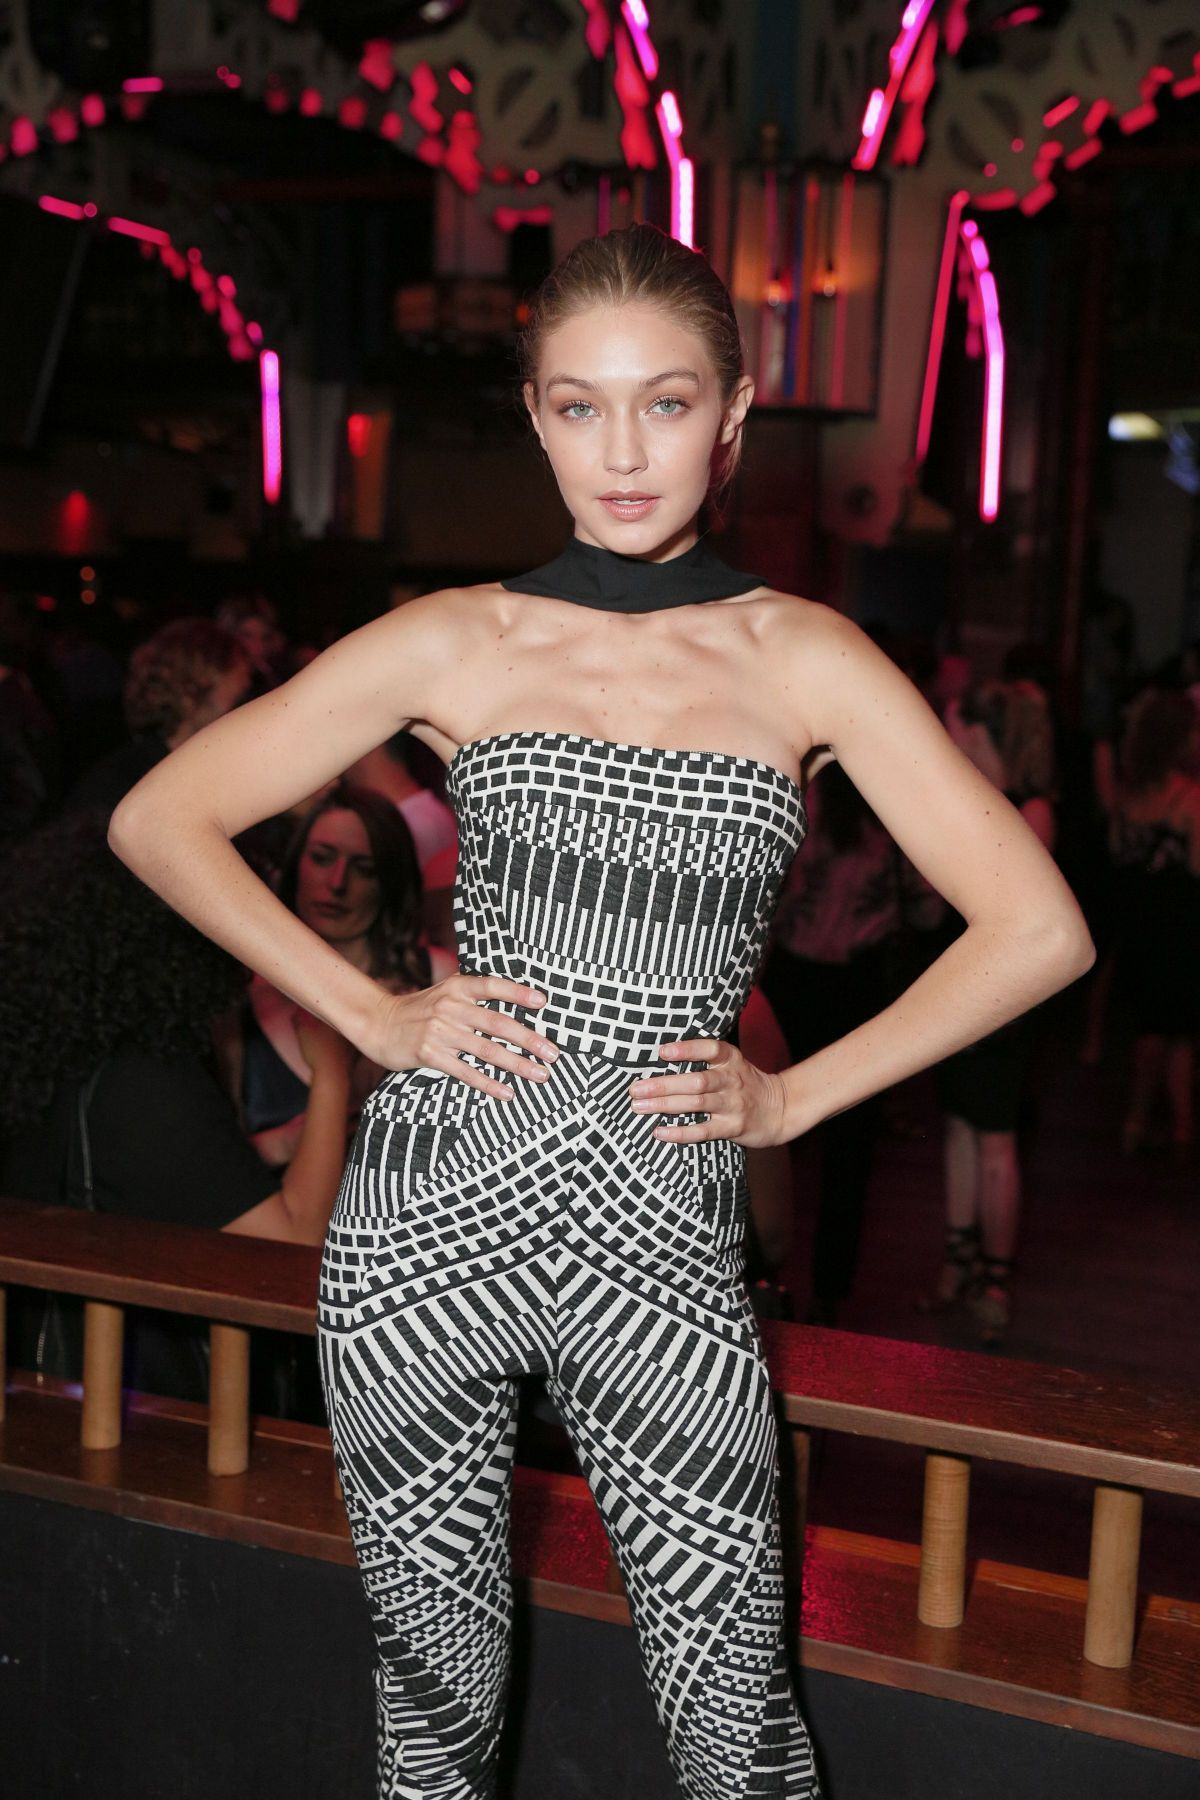 GIGI HADID at V Magazine Celebrates V103: Face the Music September Issue in New York 09/05/2016